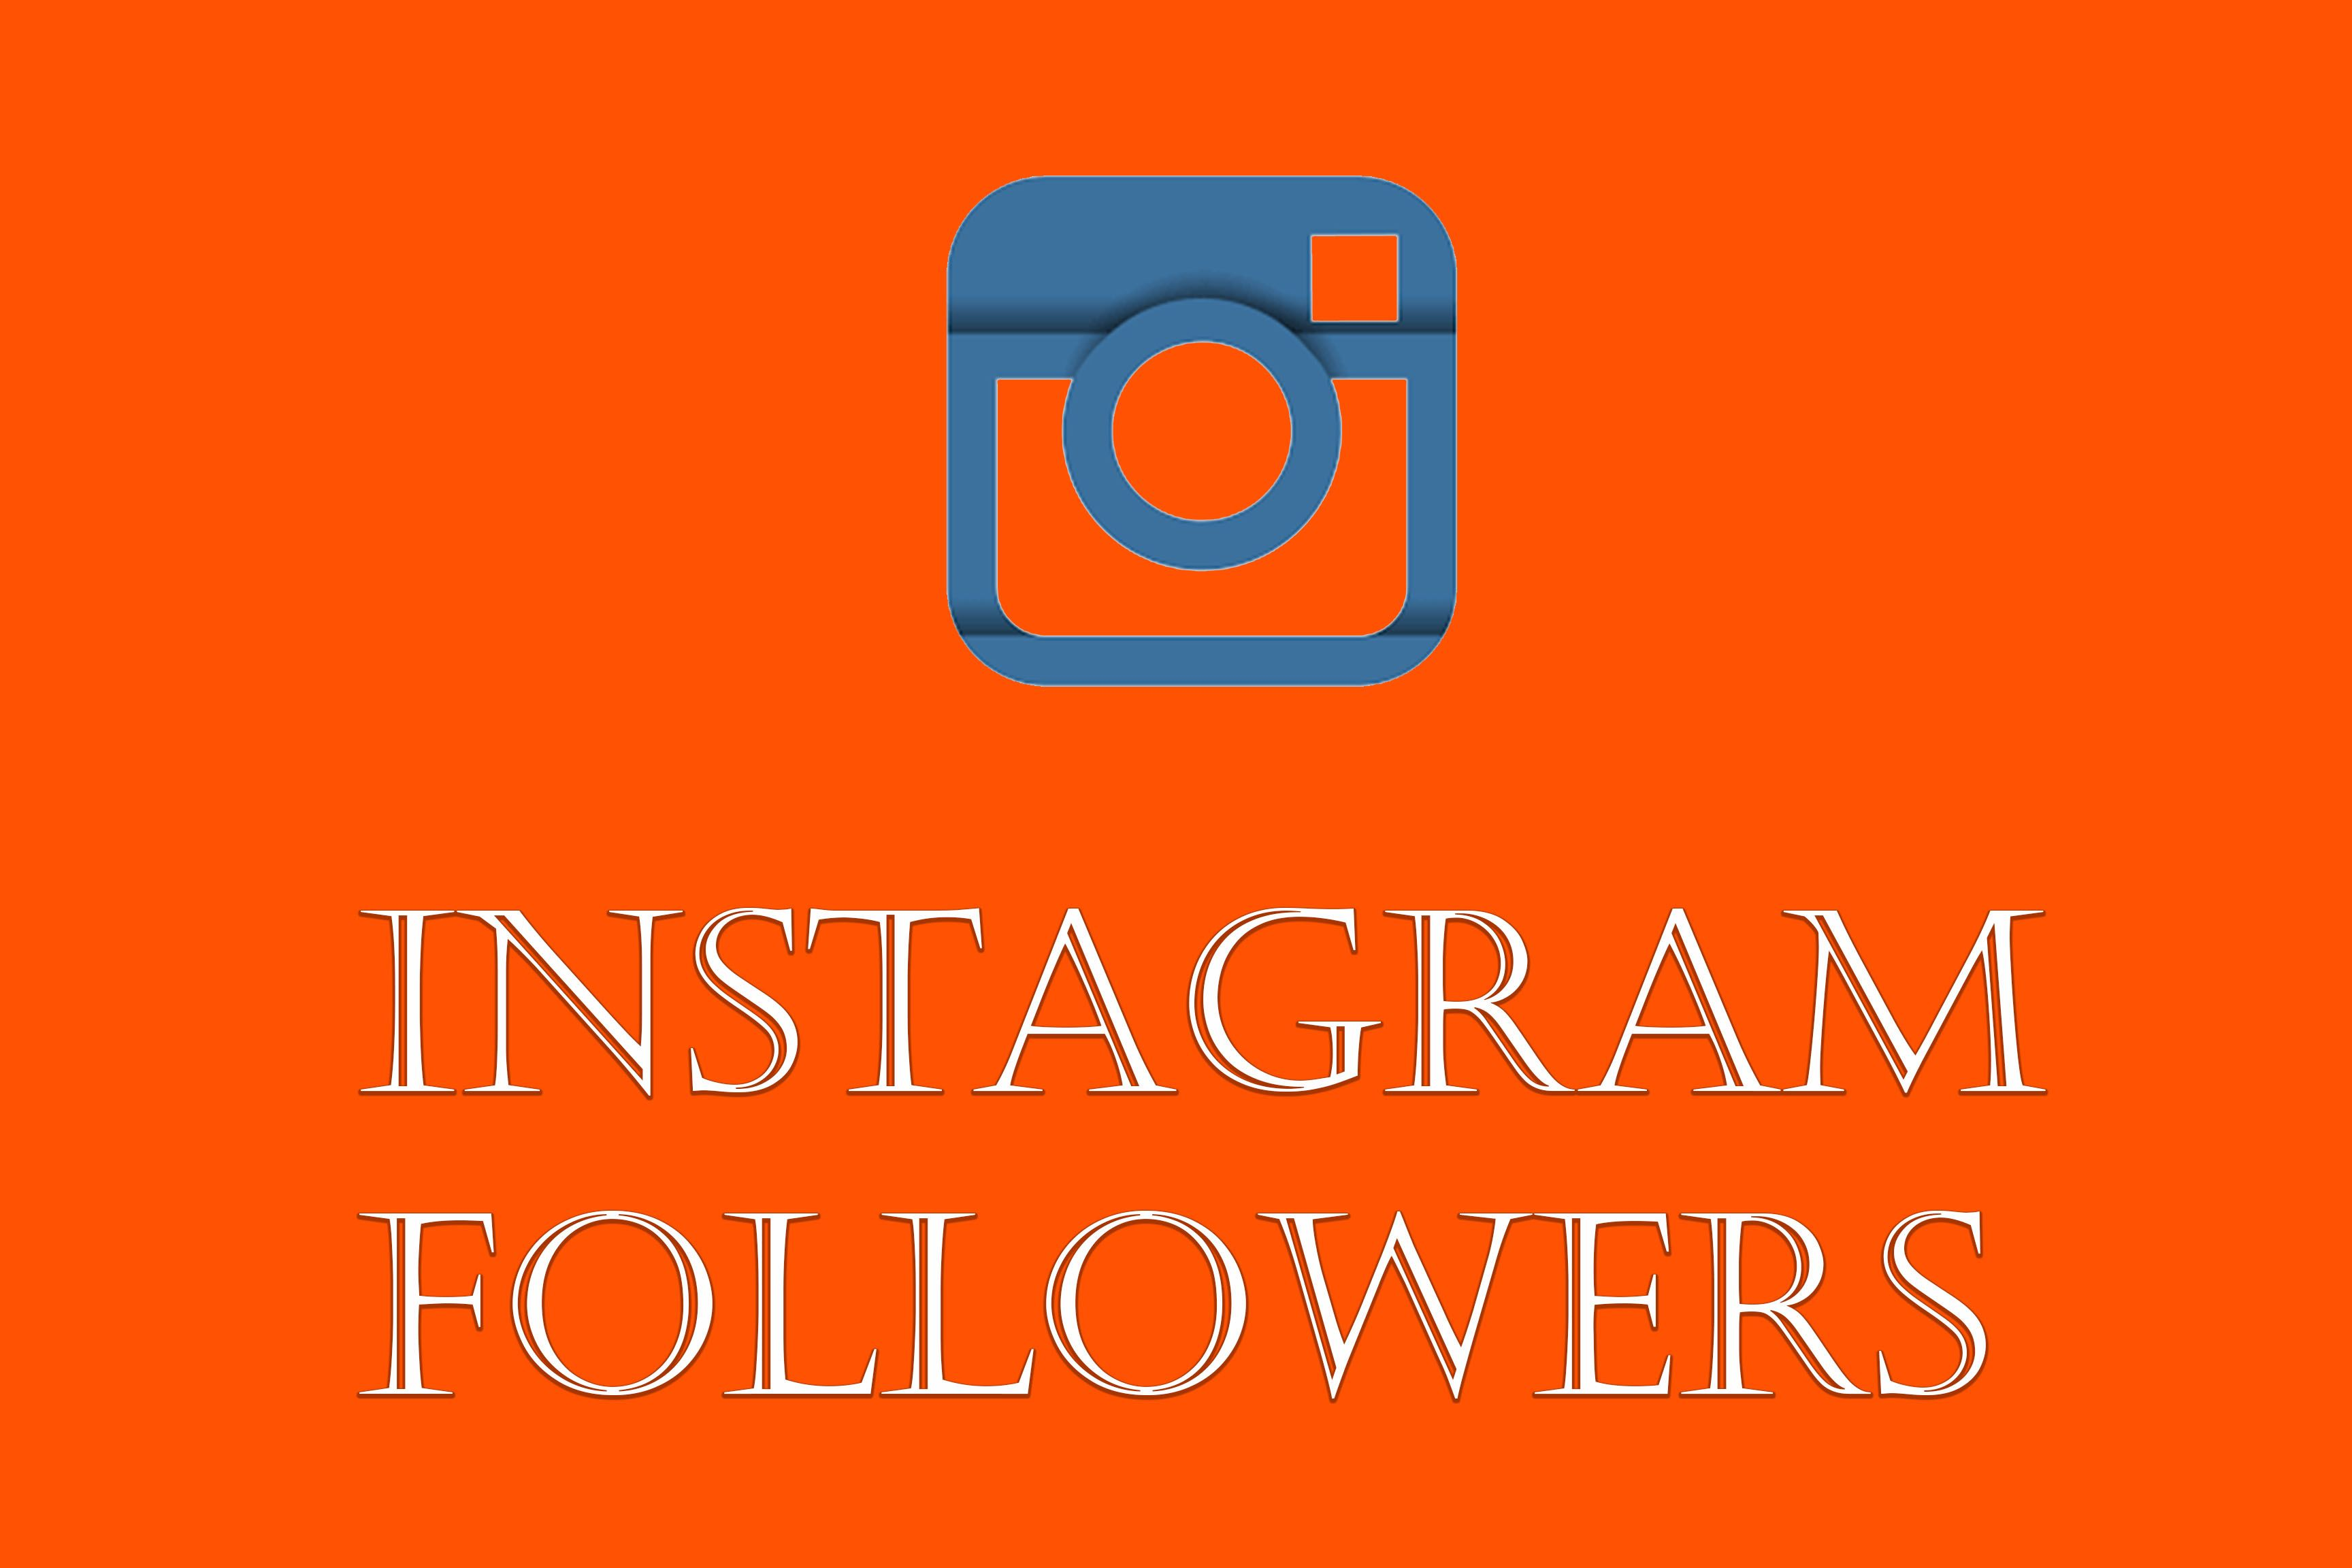 Did you know that you could buy Instagram likes and followers?